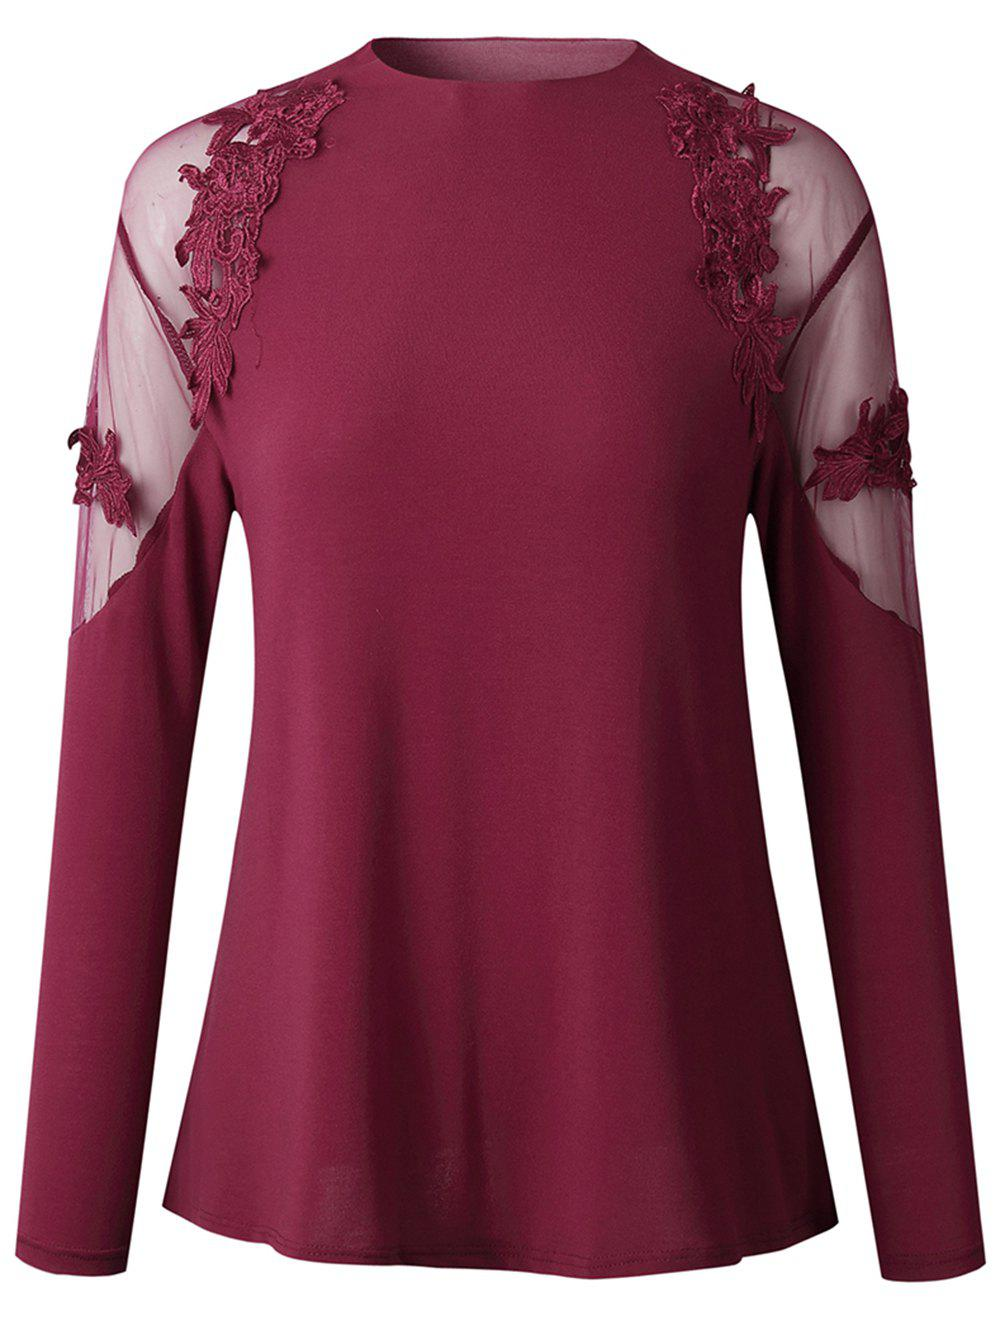 Unique 2019 New Womens Fashion lace Long Sleeve Shirt  Tops